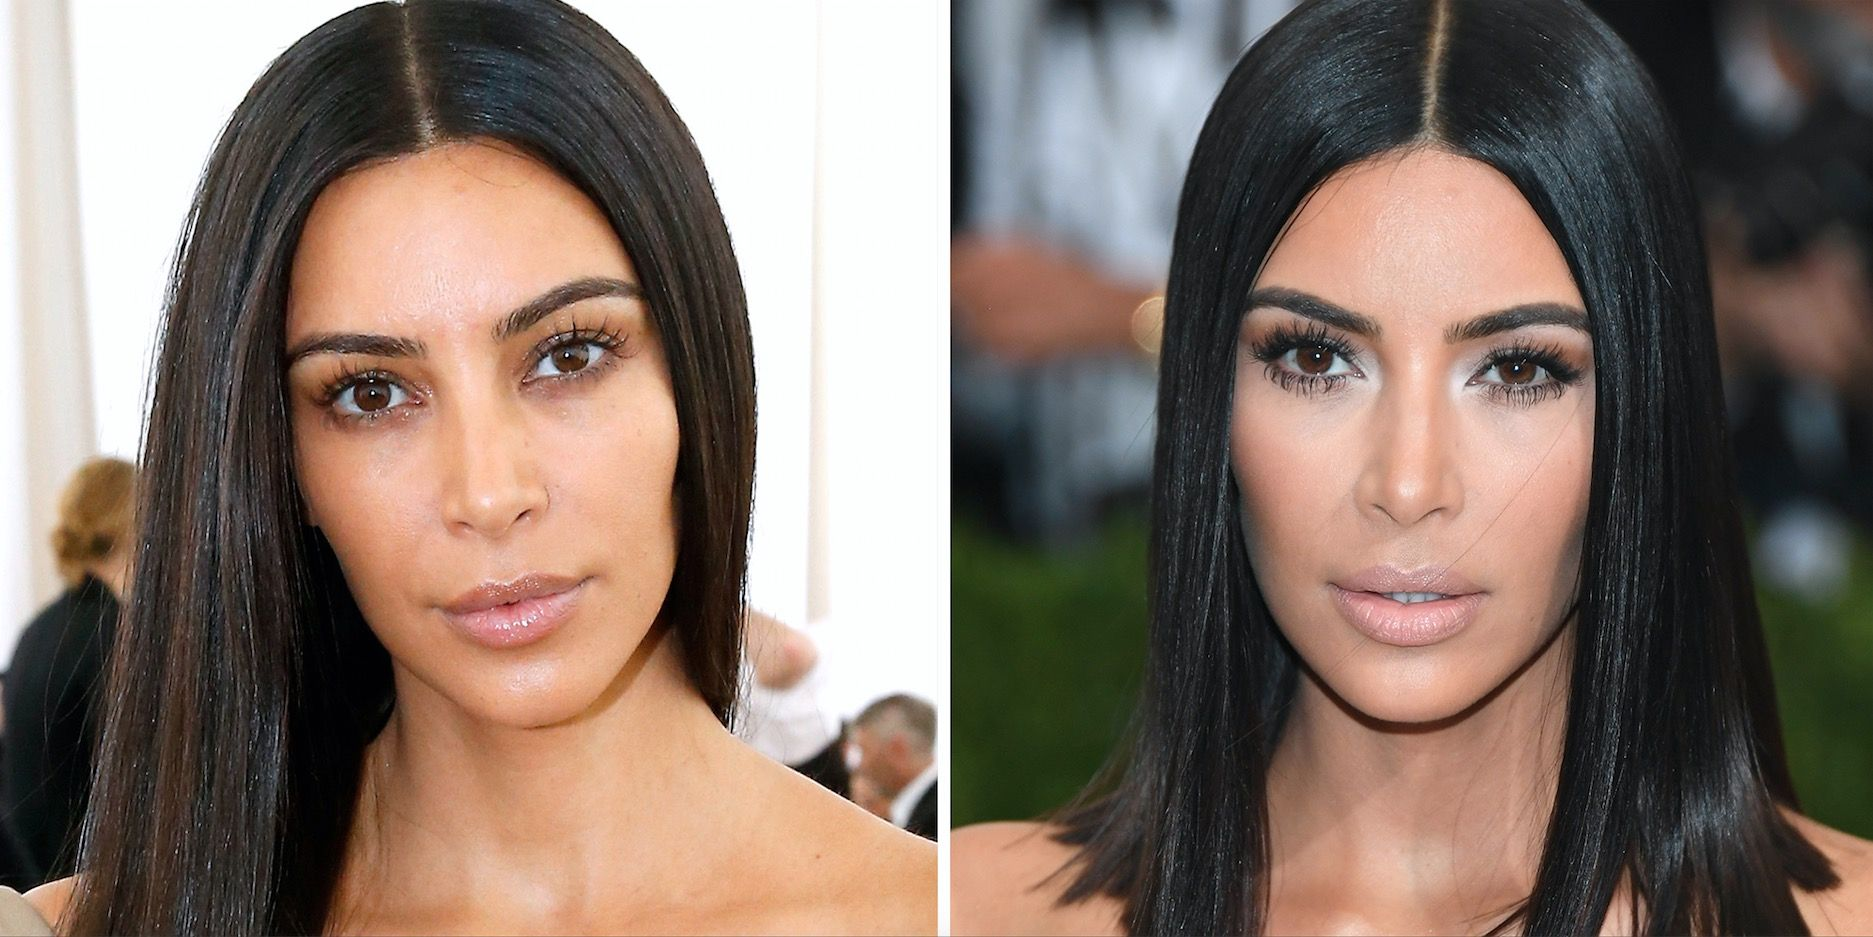 Kardashians Without Makeup From Kylie Jenner To Kim K